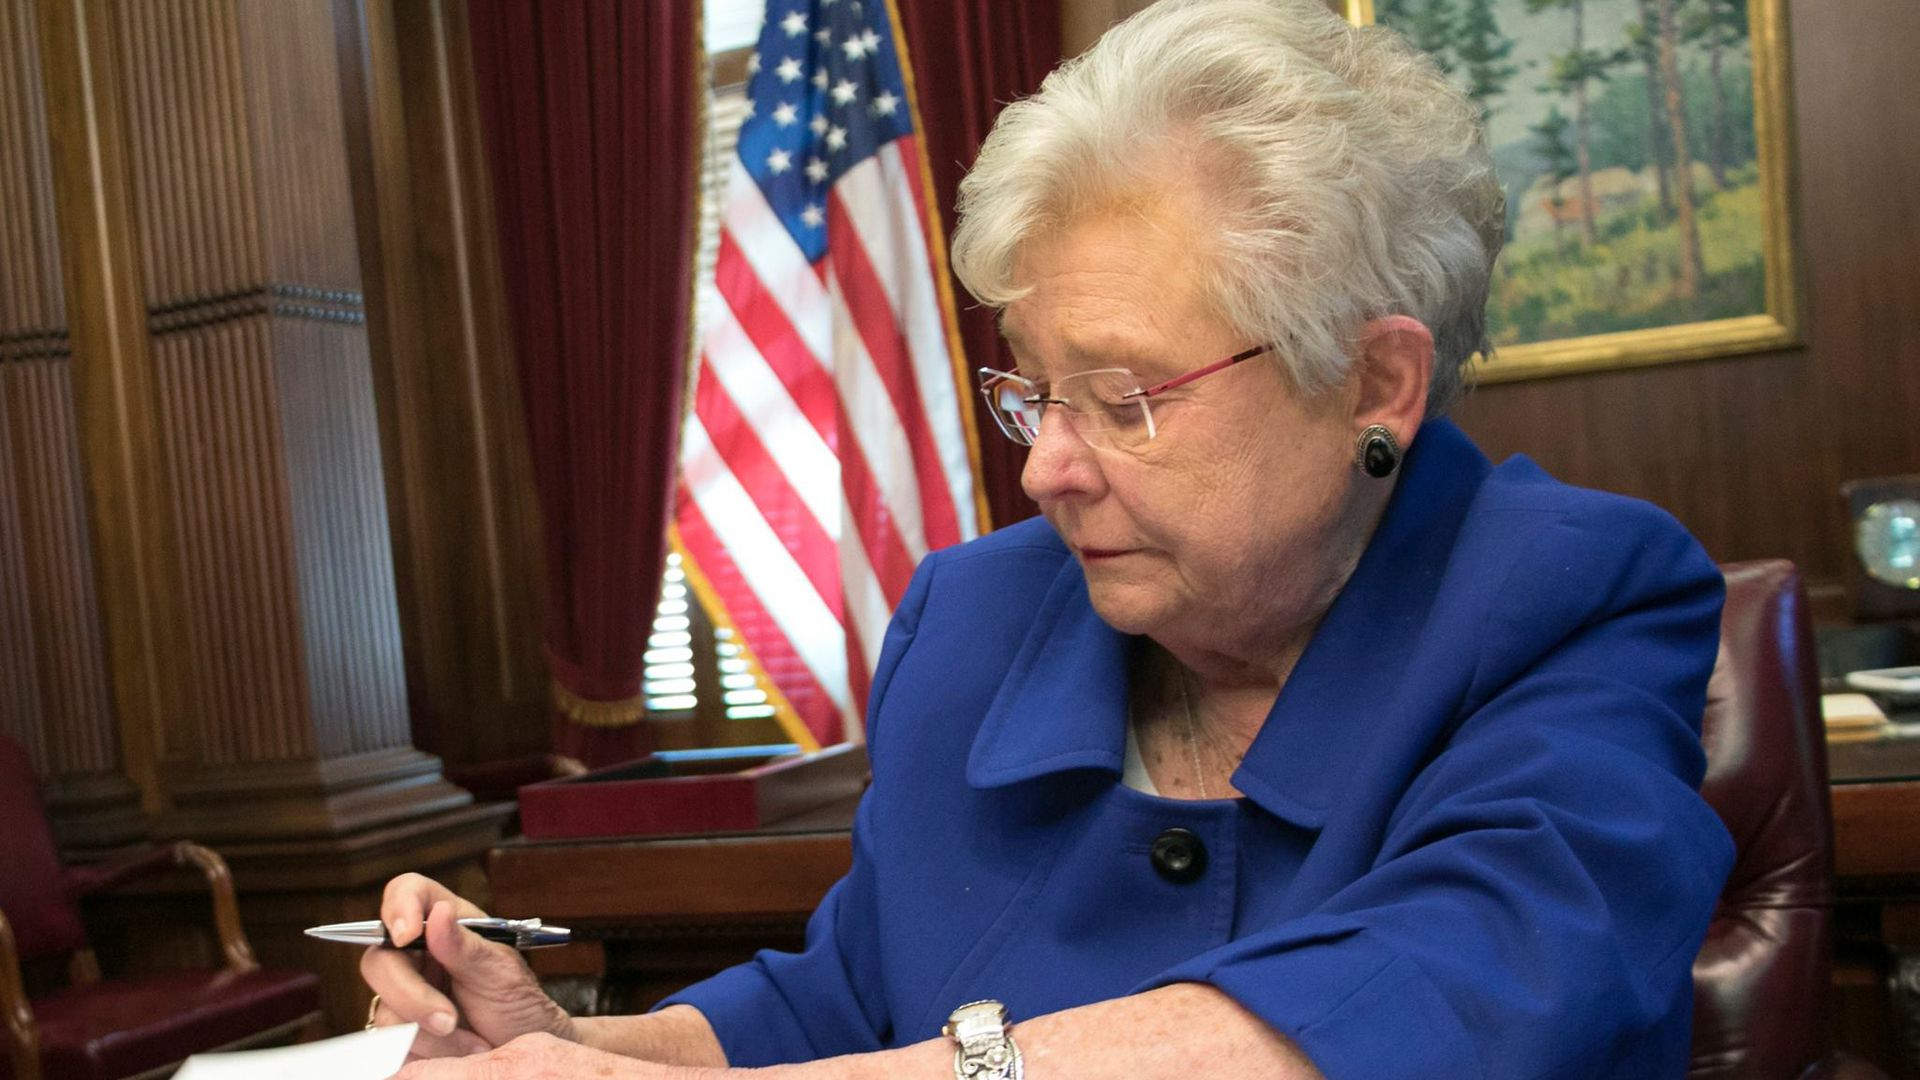 Alabama Gov. Kay Ivey signs a book.